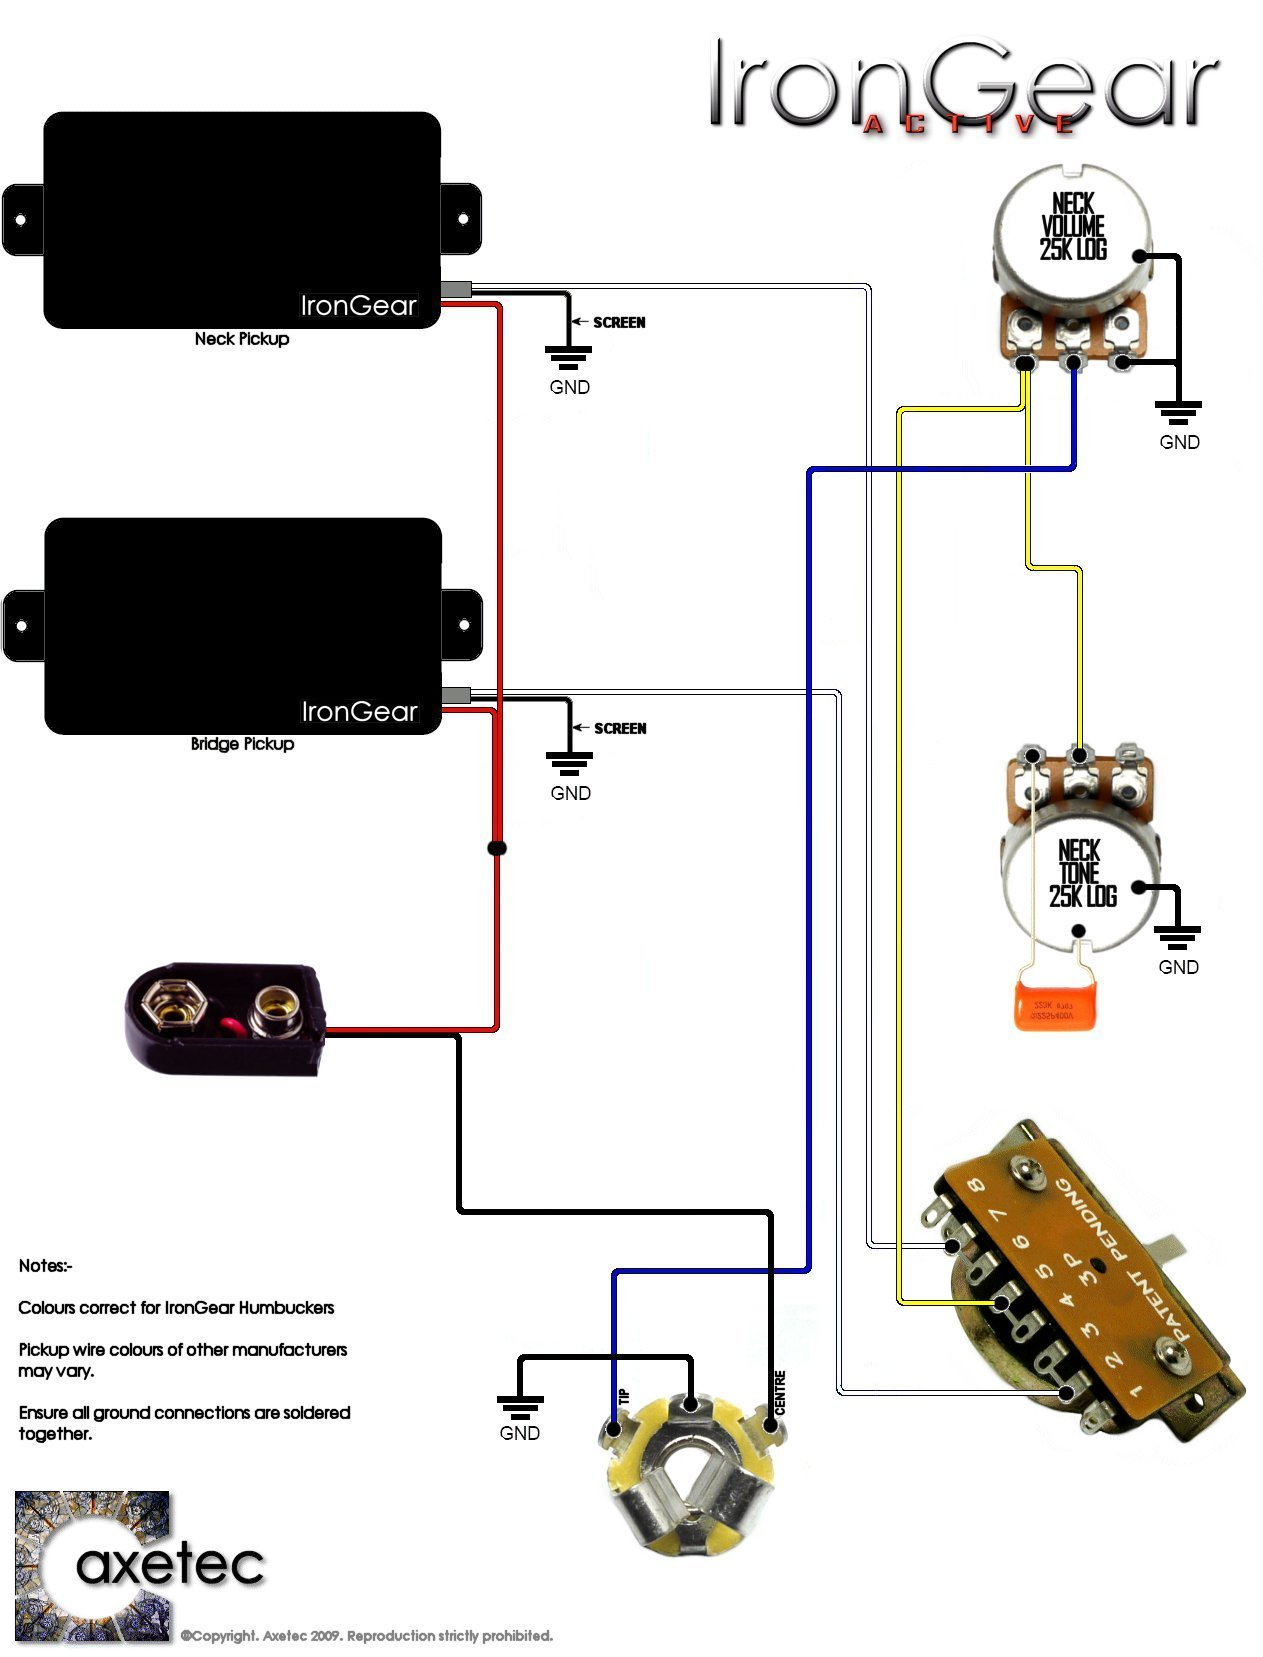 guitar wiring diagram 2 pickup 1 volume tone 277 480v transformer irongear pickups